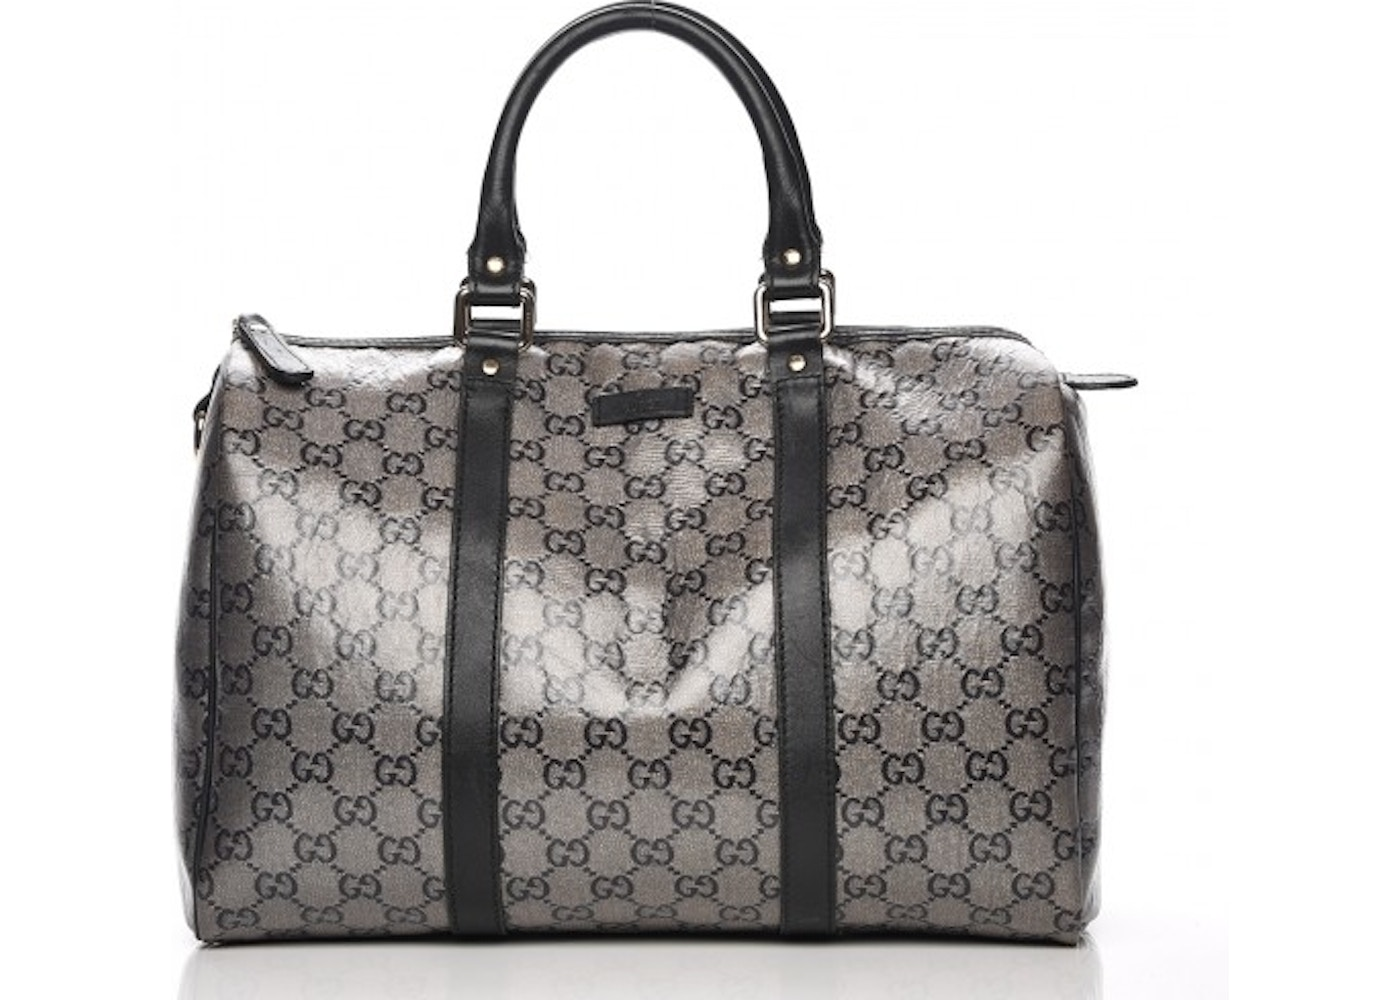 922218d90e7 Gucci Joy Boston Handbag Monogram GG Metallic Medium Black. Monogram GG  Metallic Medium Black